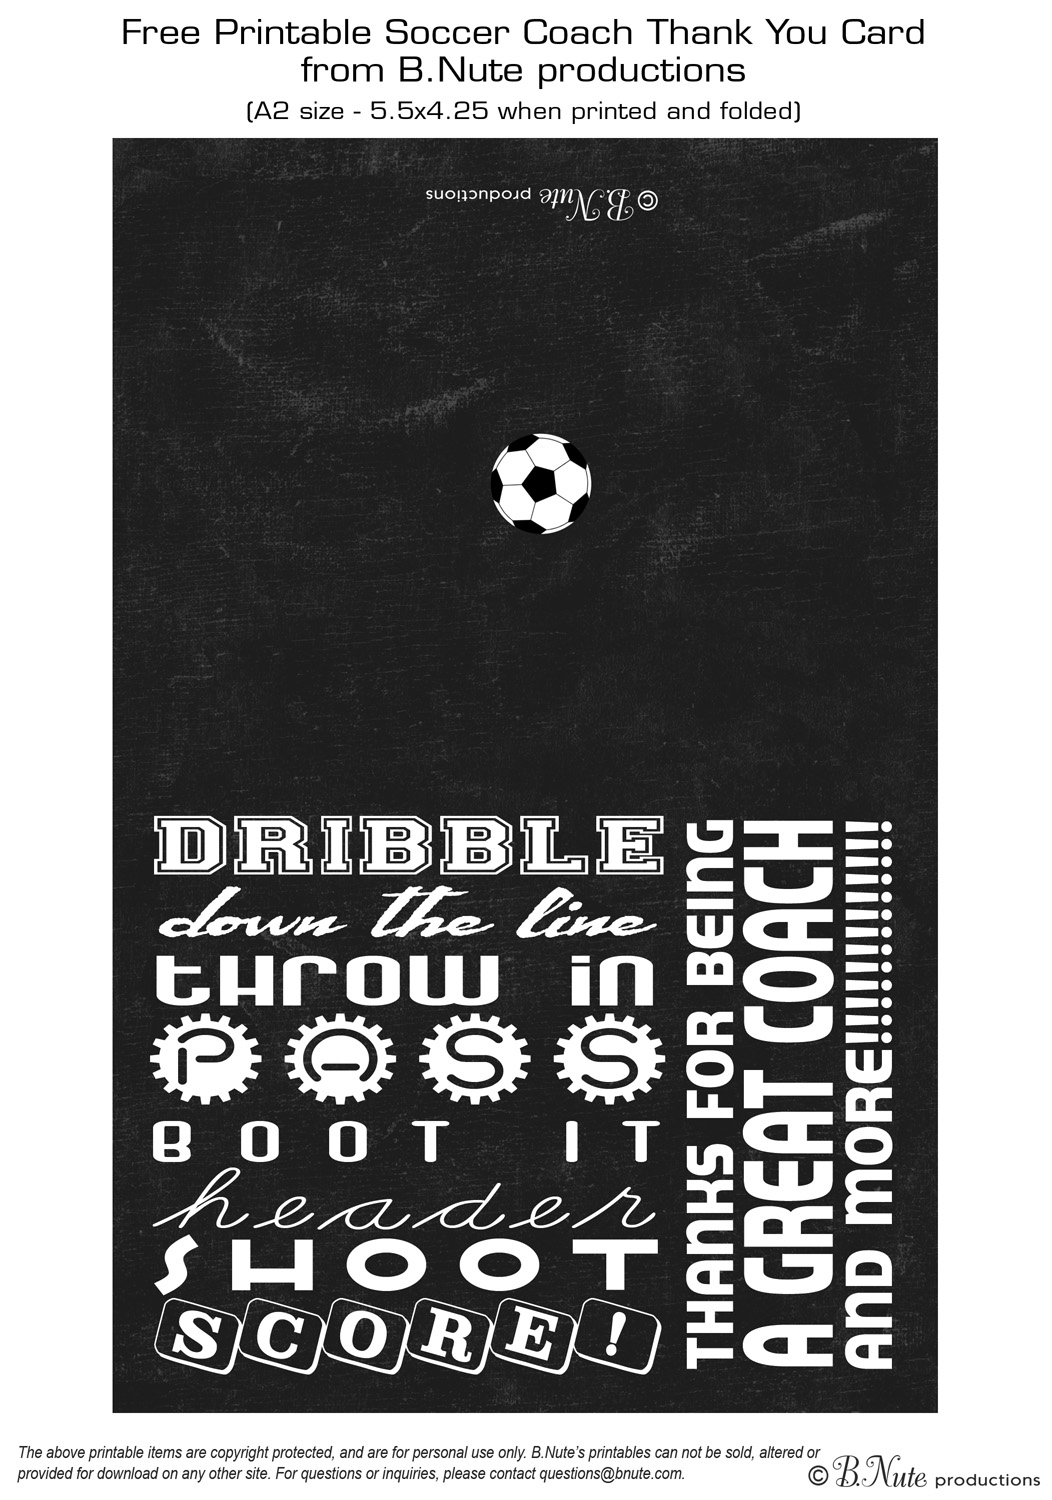 Bnute productions free printable soccer coach thank you card free printable soccer coach thank you card kristyandbryce Gallery